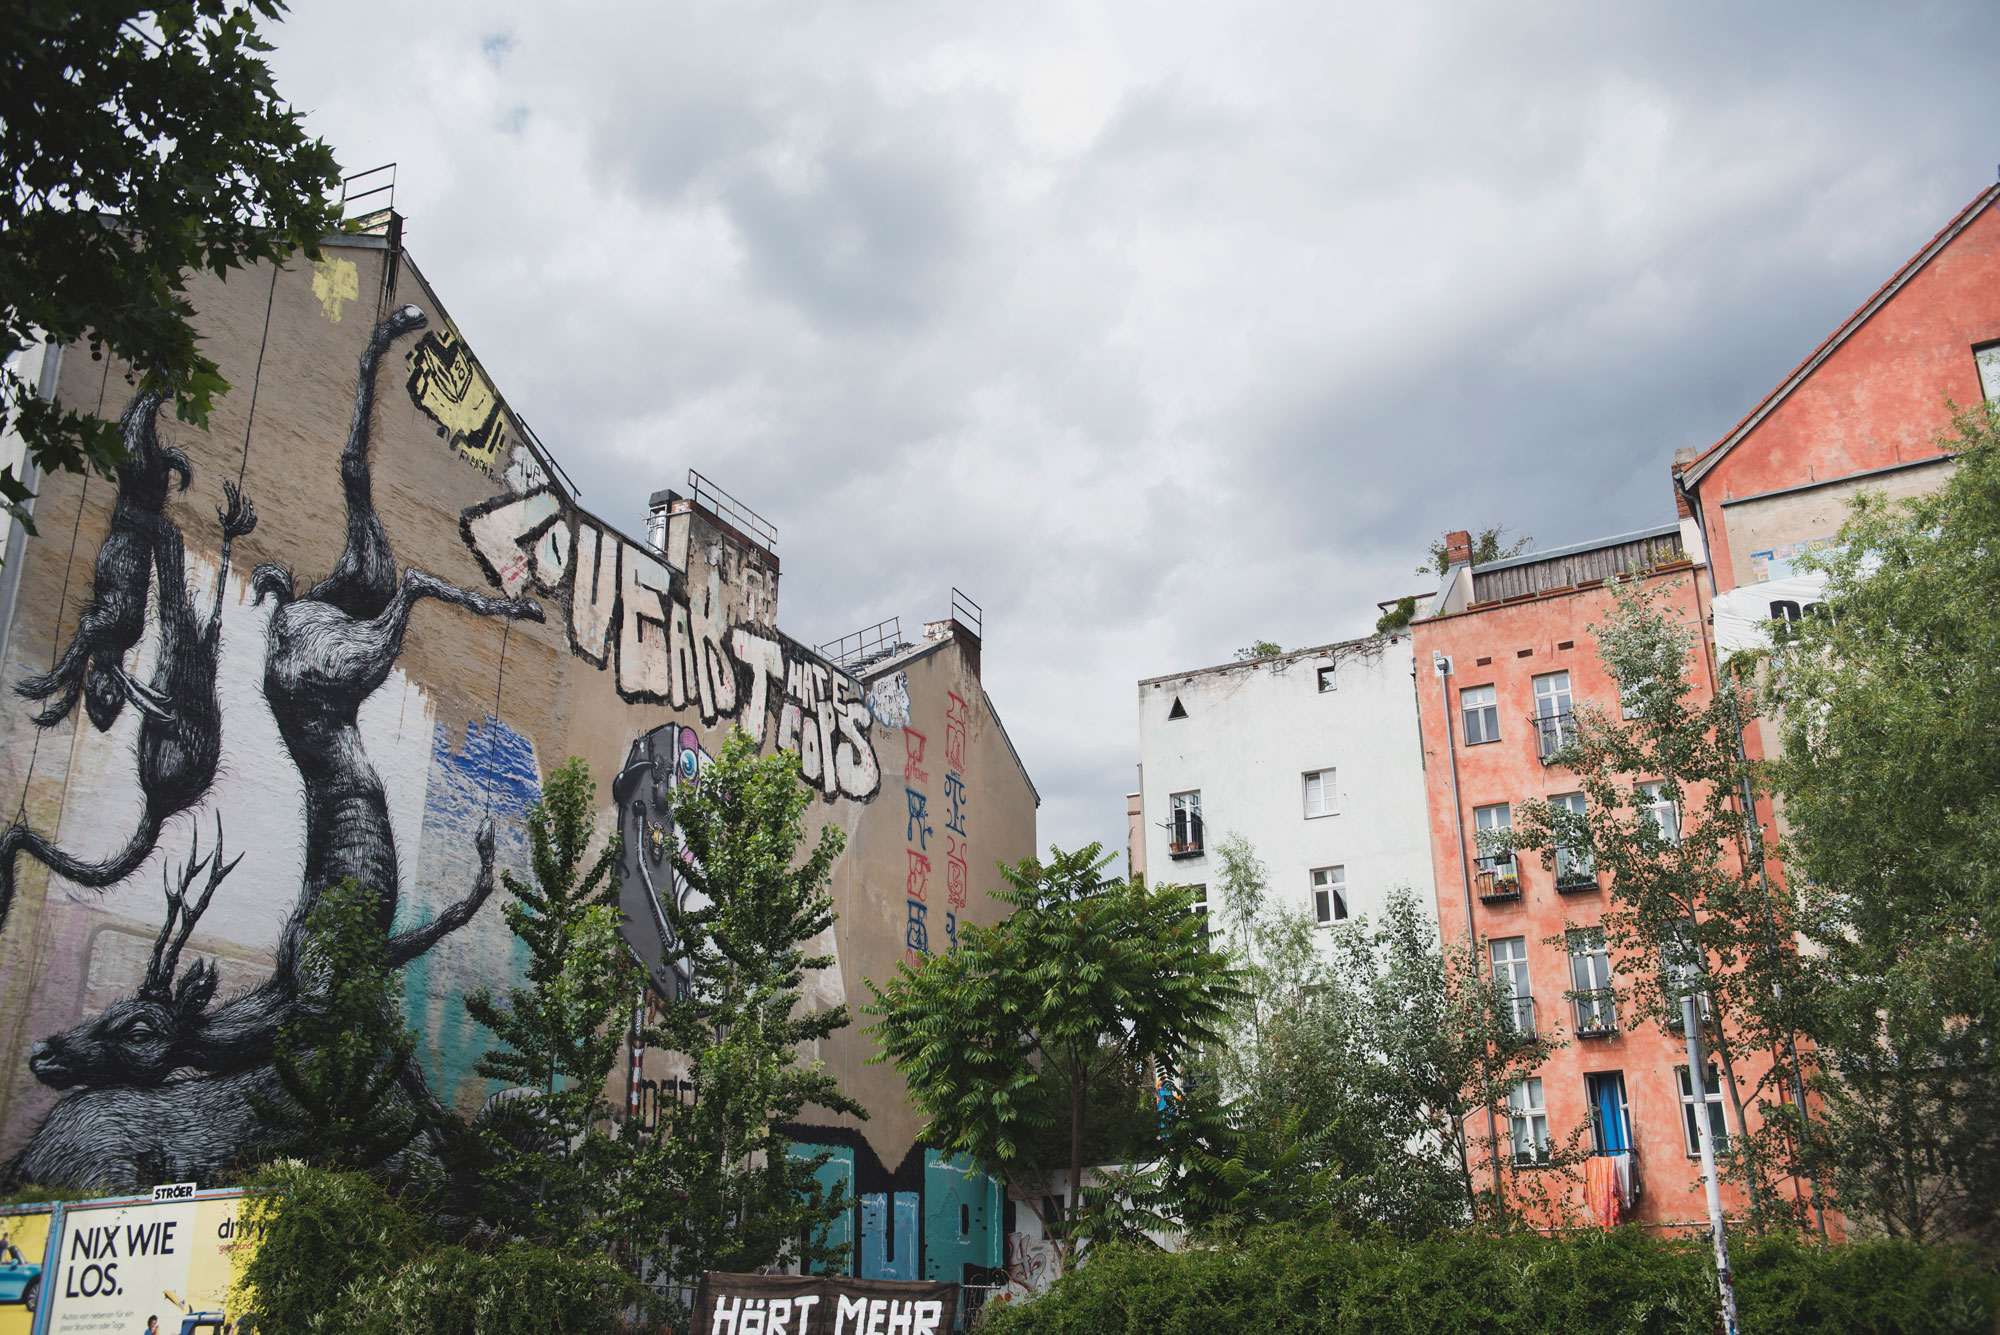 Our Tour of Berlins district of Kreuzberg